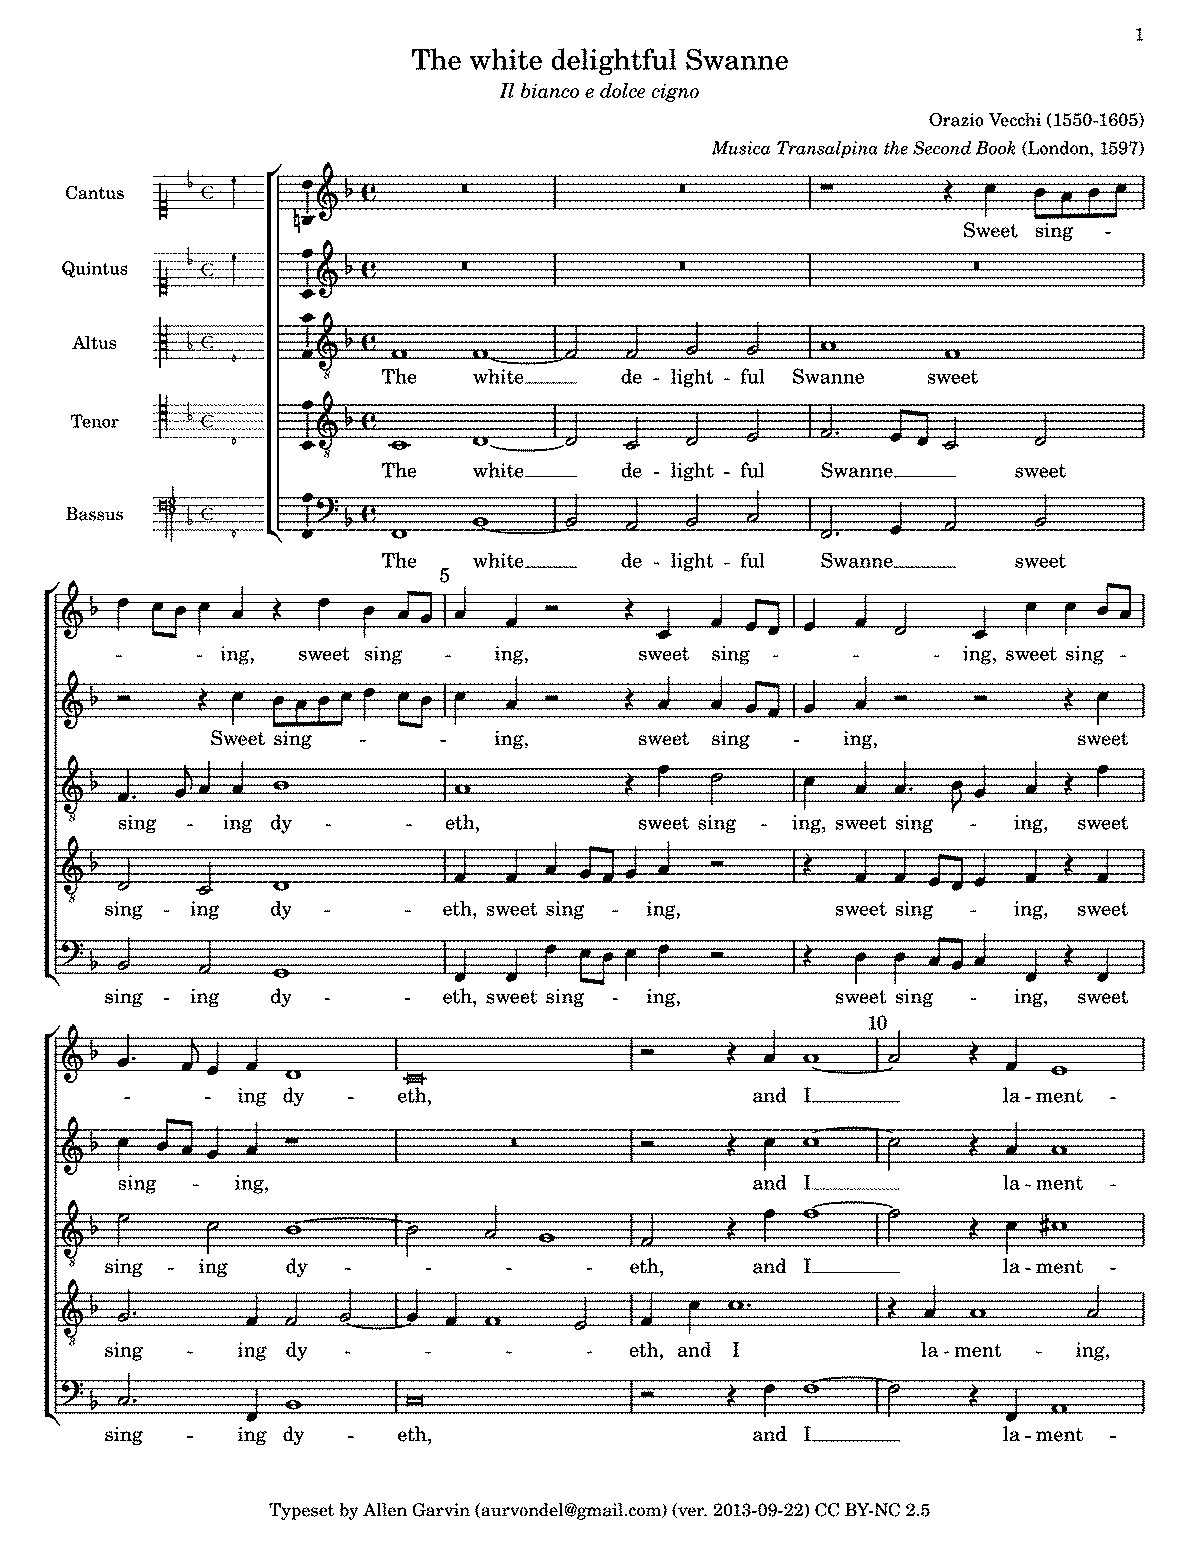 PMLP280077-01-the white delightful swan---0-score.pdf